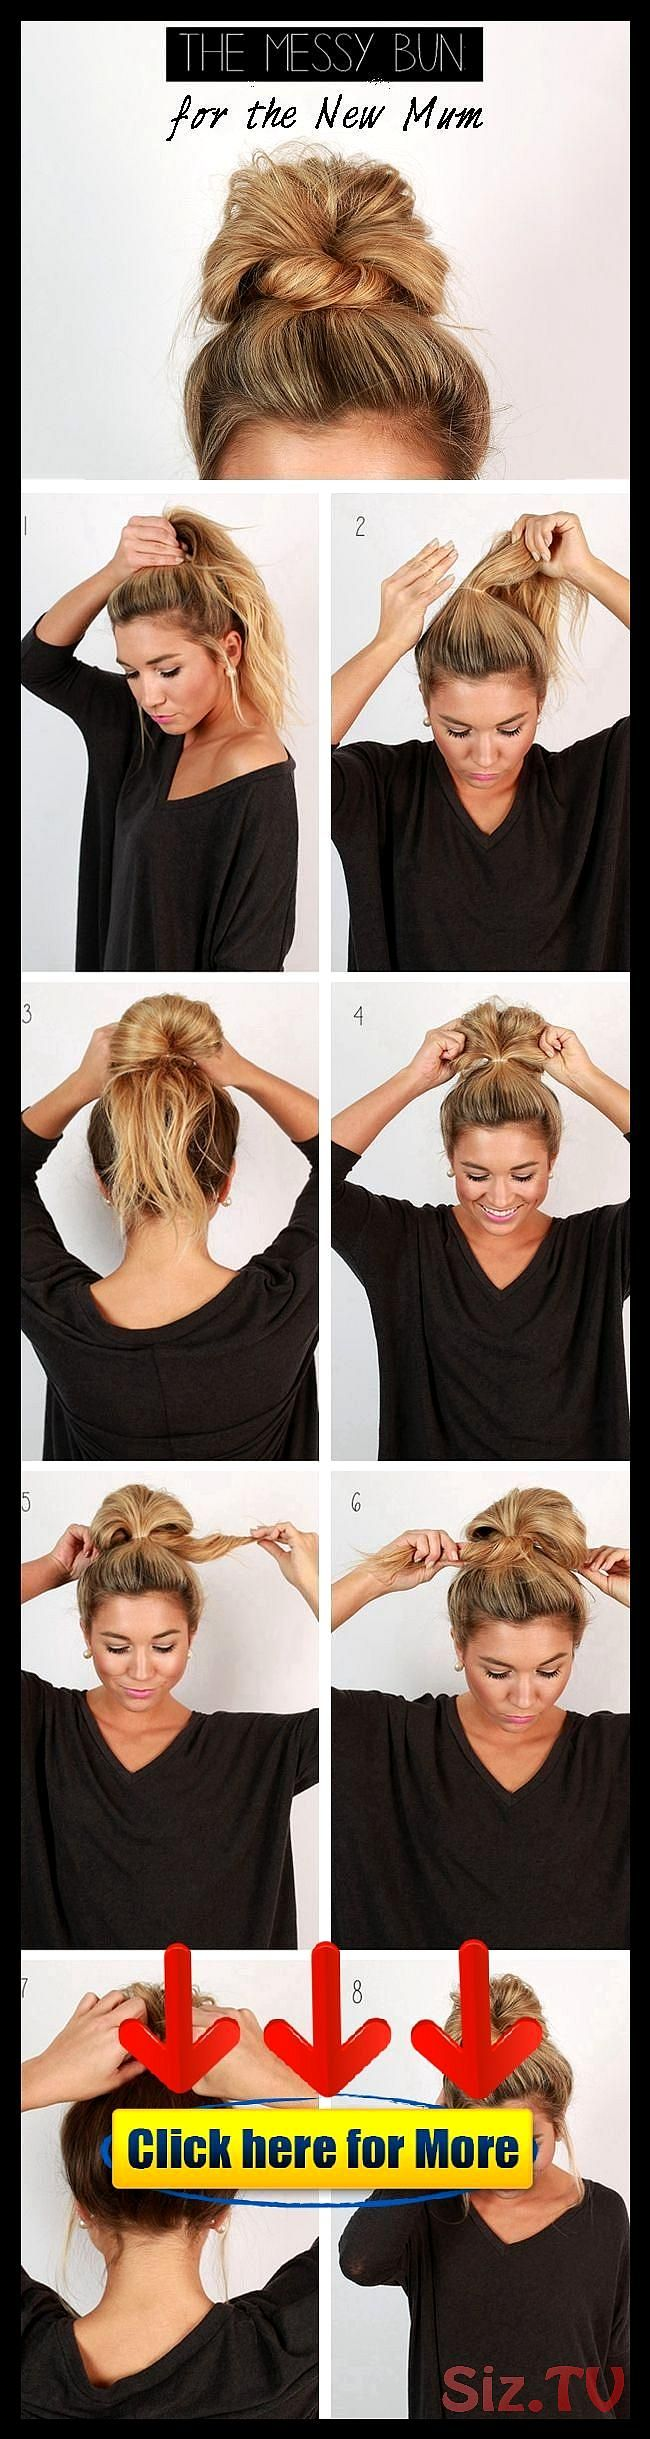 The 11 Best Easy Updo Hairstyleshairstyle hair 2019 woman man The 11 Best Easy U…